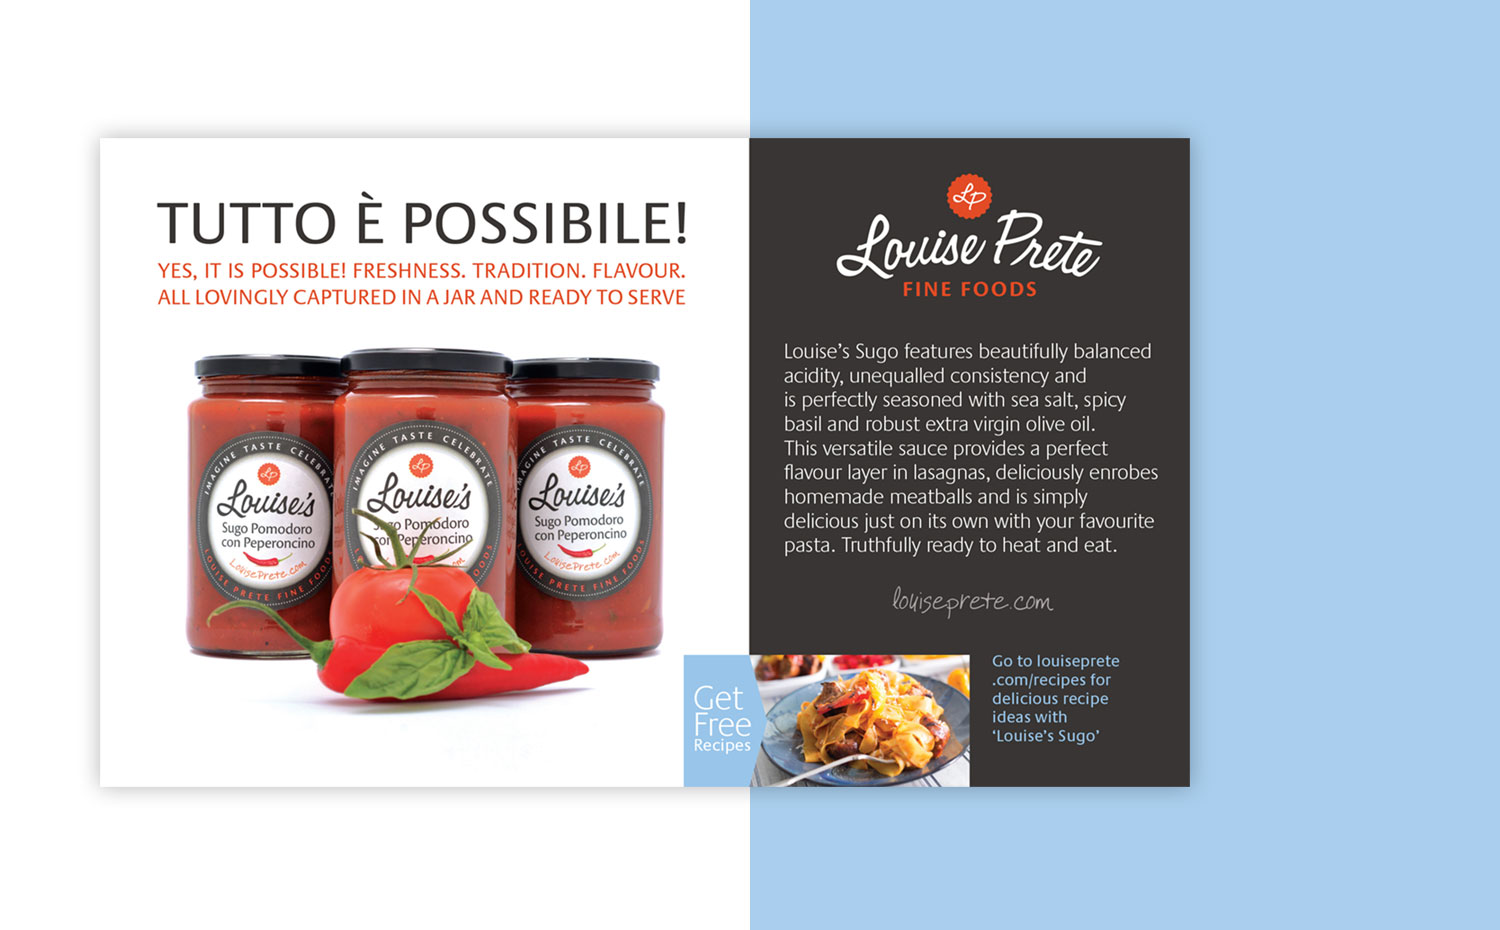 Louise Prete Fine Foods digital and traditional advertising campaigns